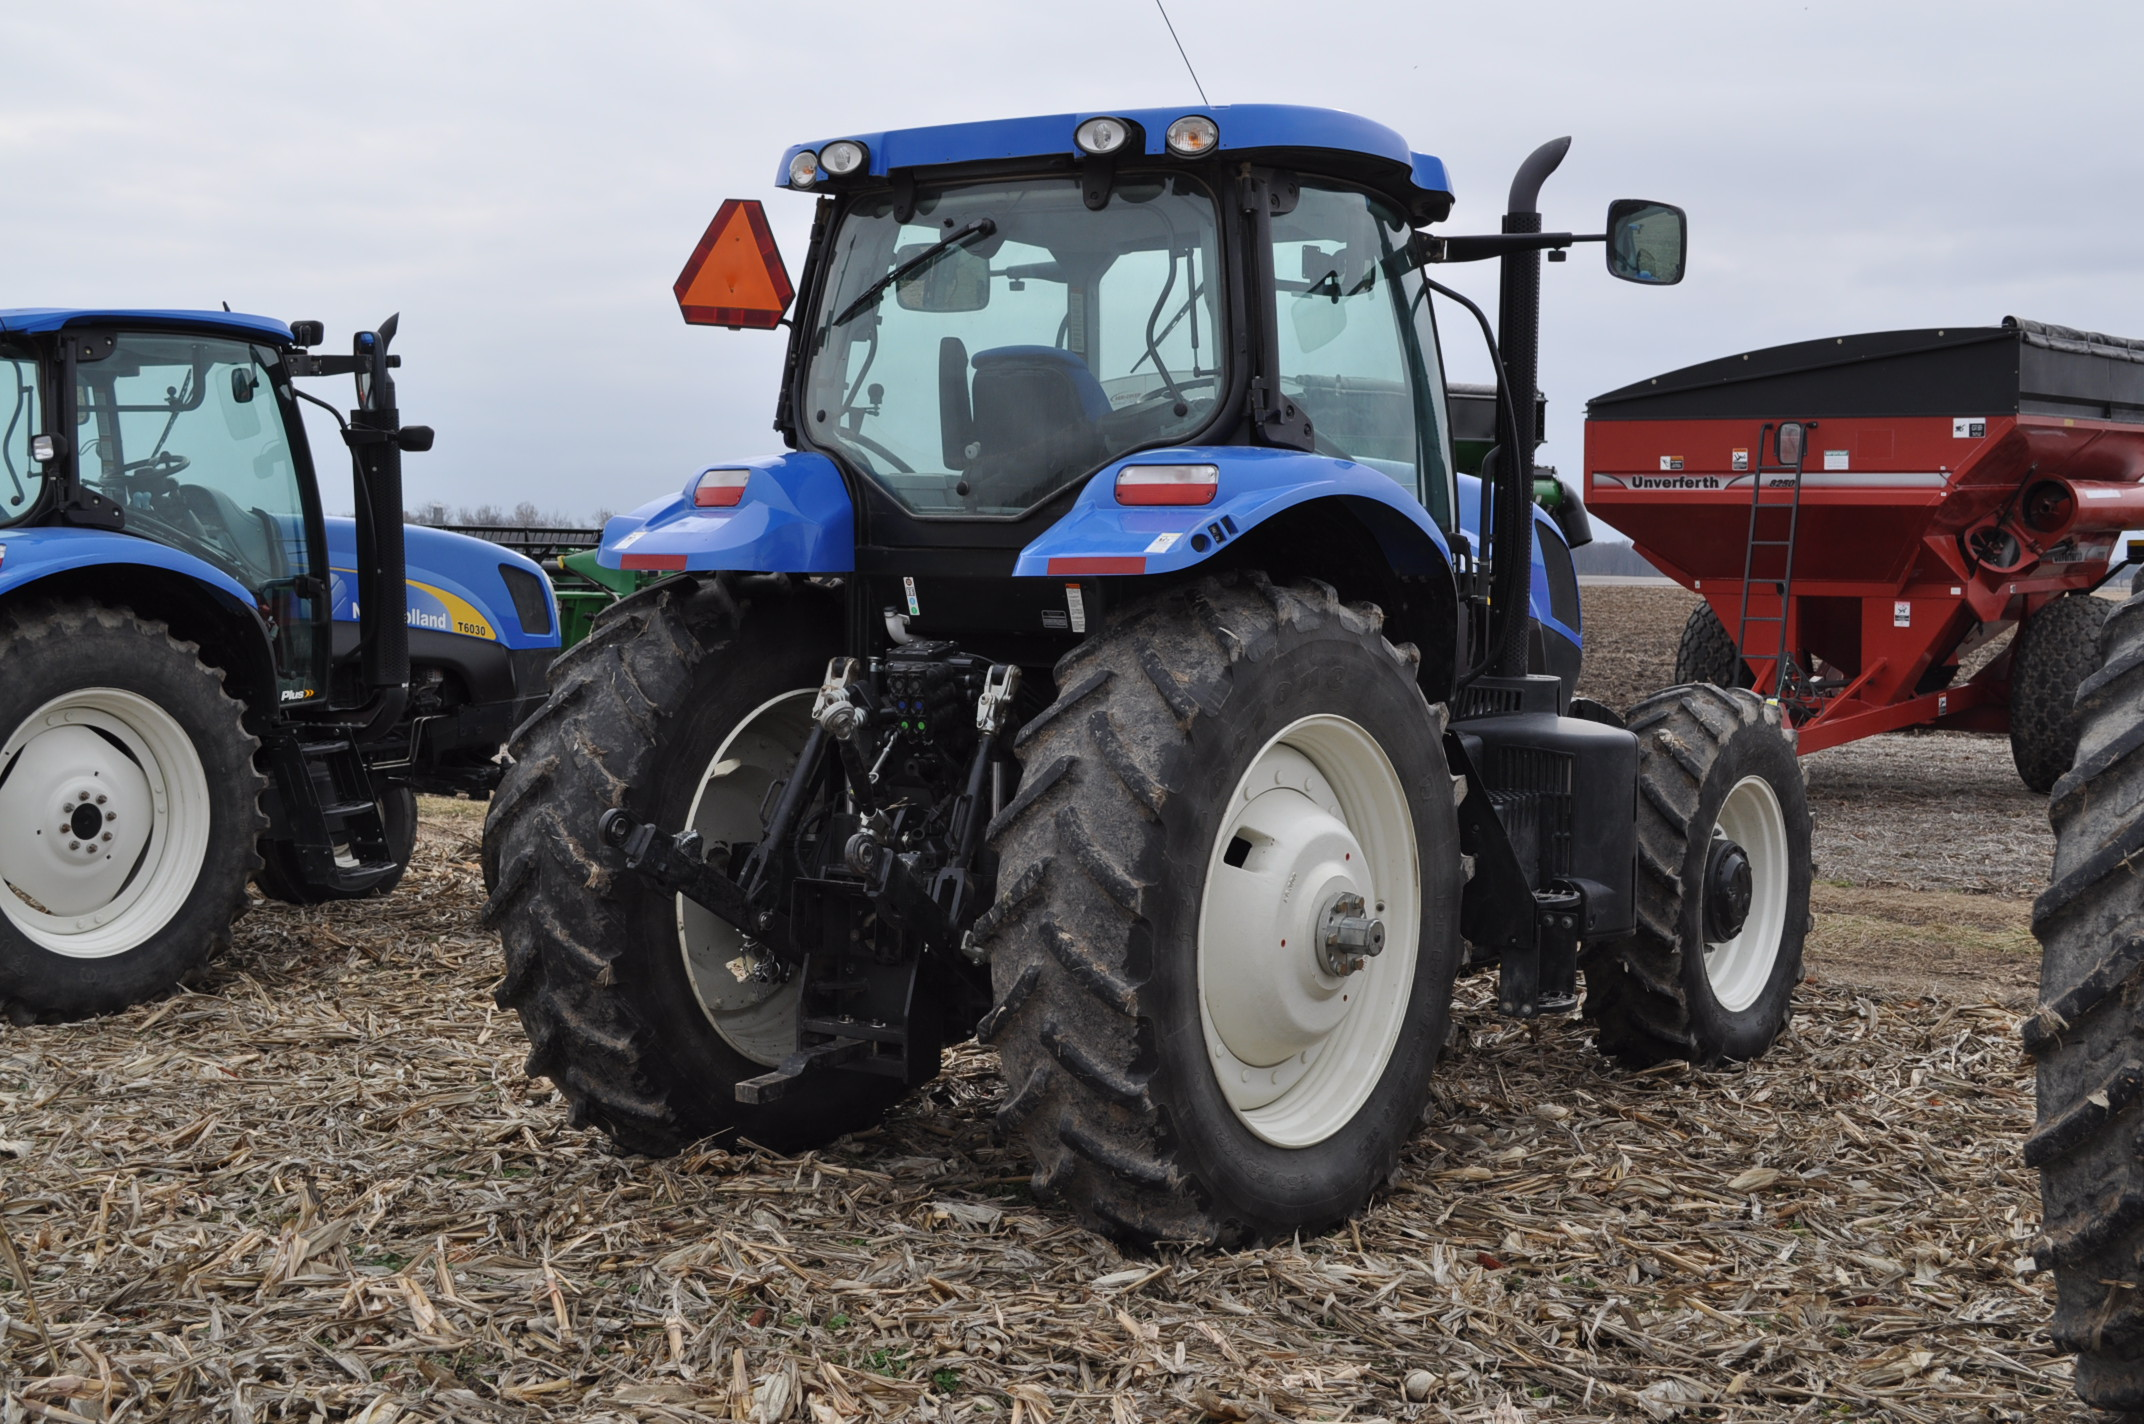 New Holland T7.210 MFWD tractor, 460/85 R 42 rear, 380/85 R 30 Firestone front, Super Steer - Image 3 of 24